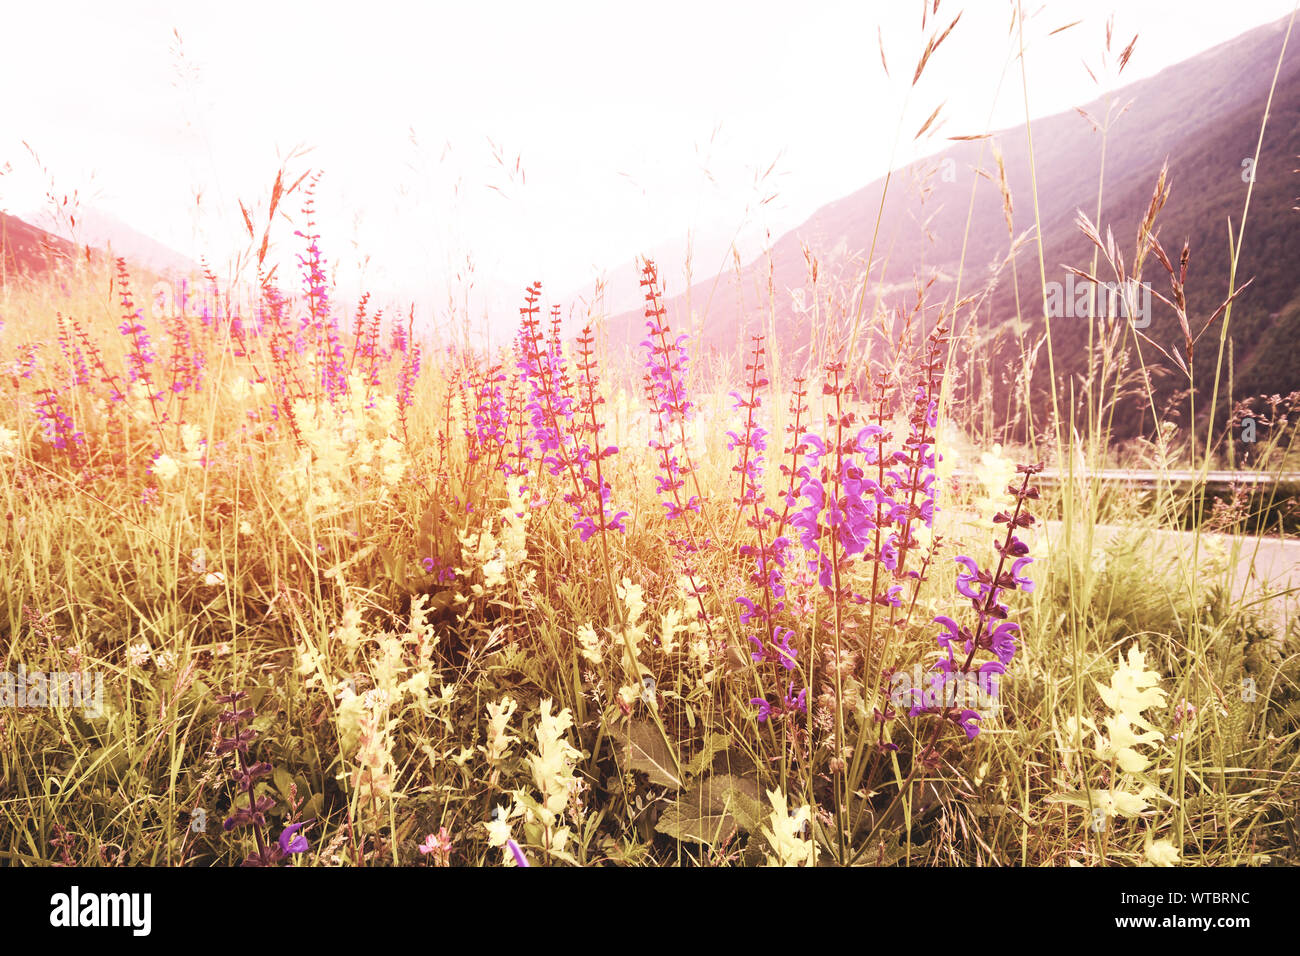 Soft focus, Beautiful flowers with mountain background, Plants dandelions, Retro vintage Instagram style filter effect background. Stock Photo